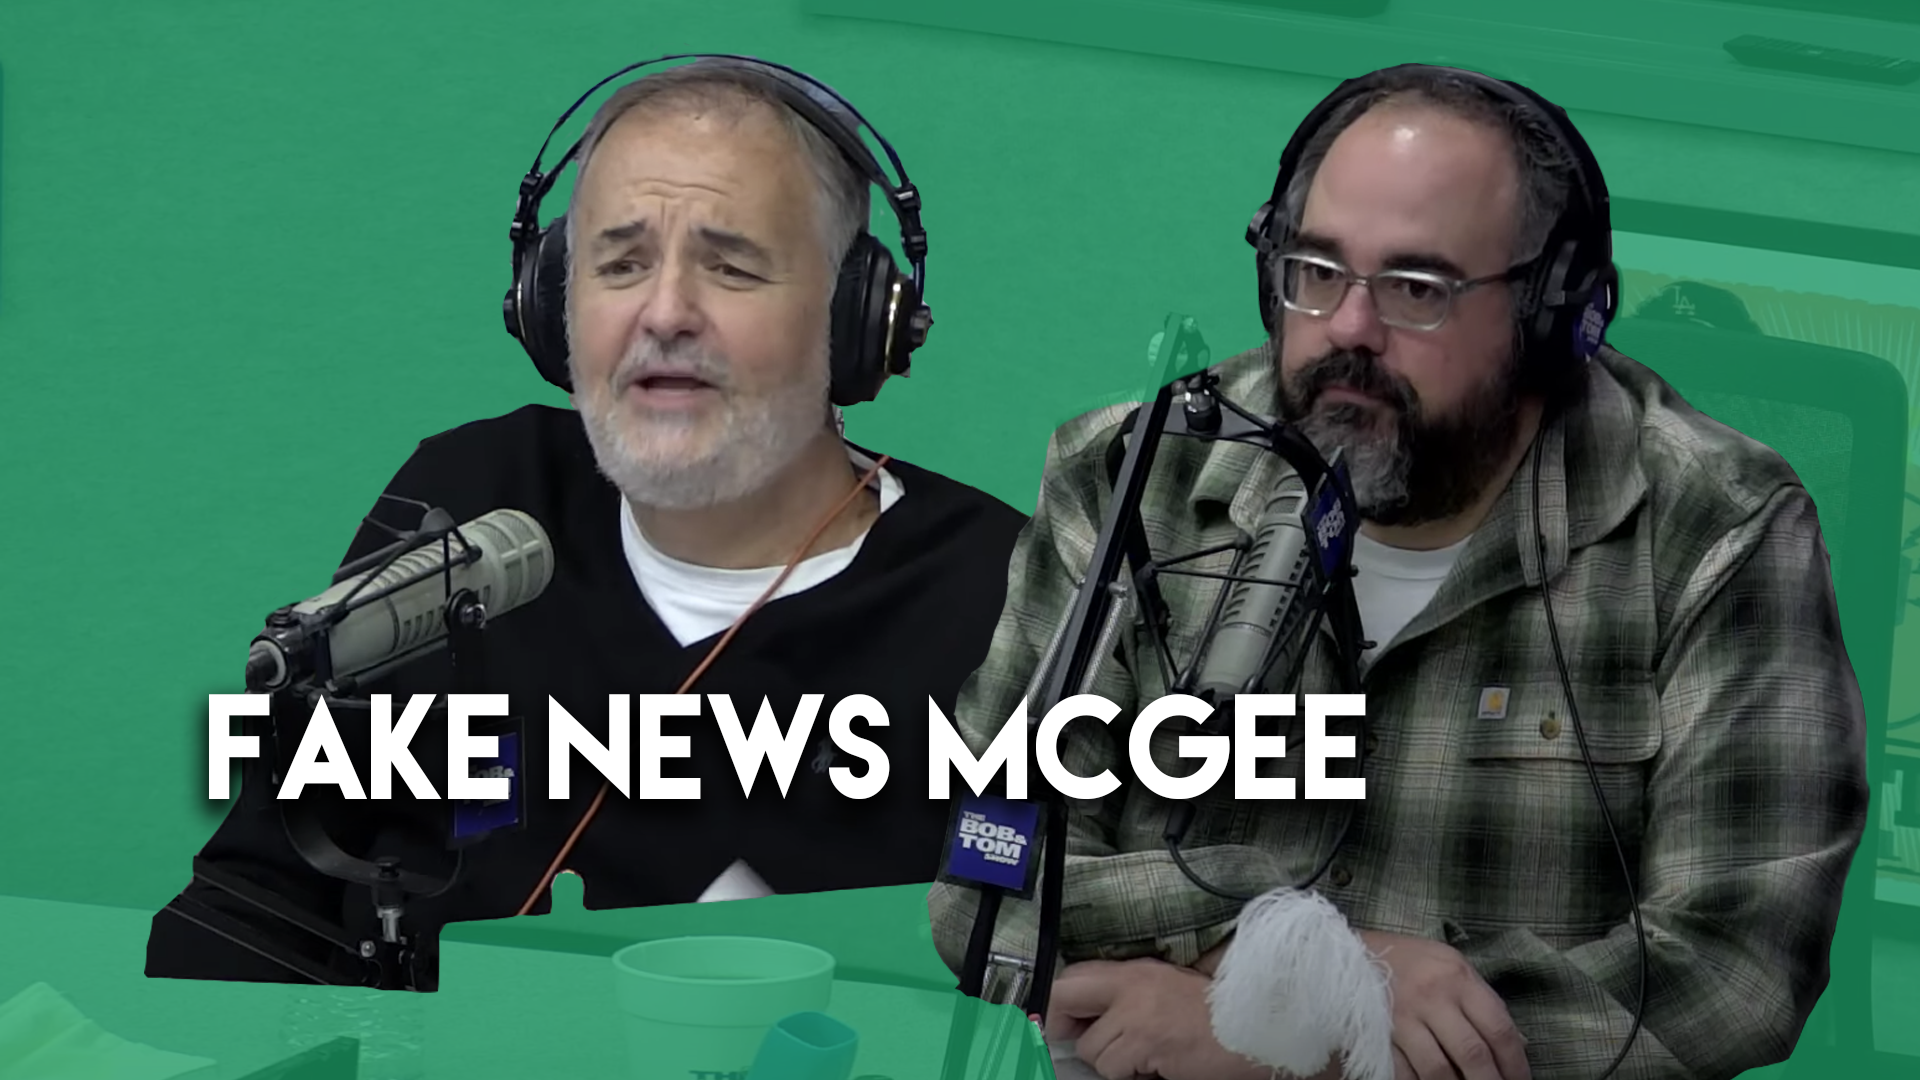 Fake News McGee